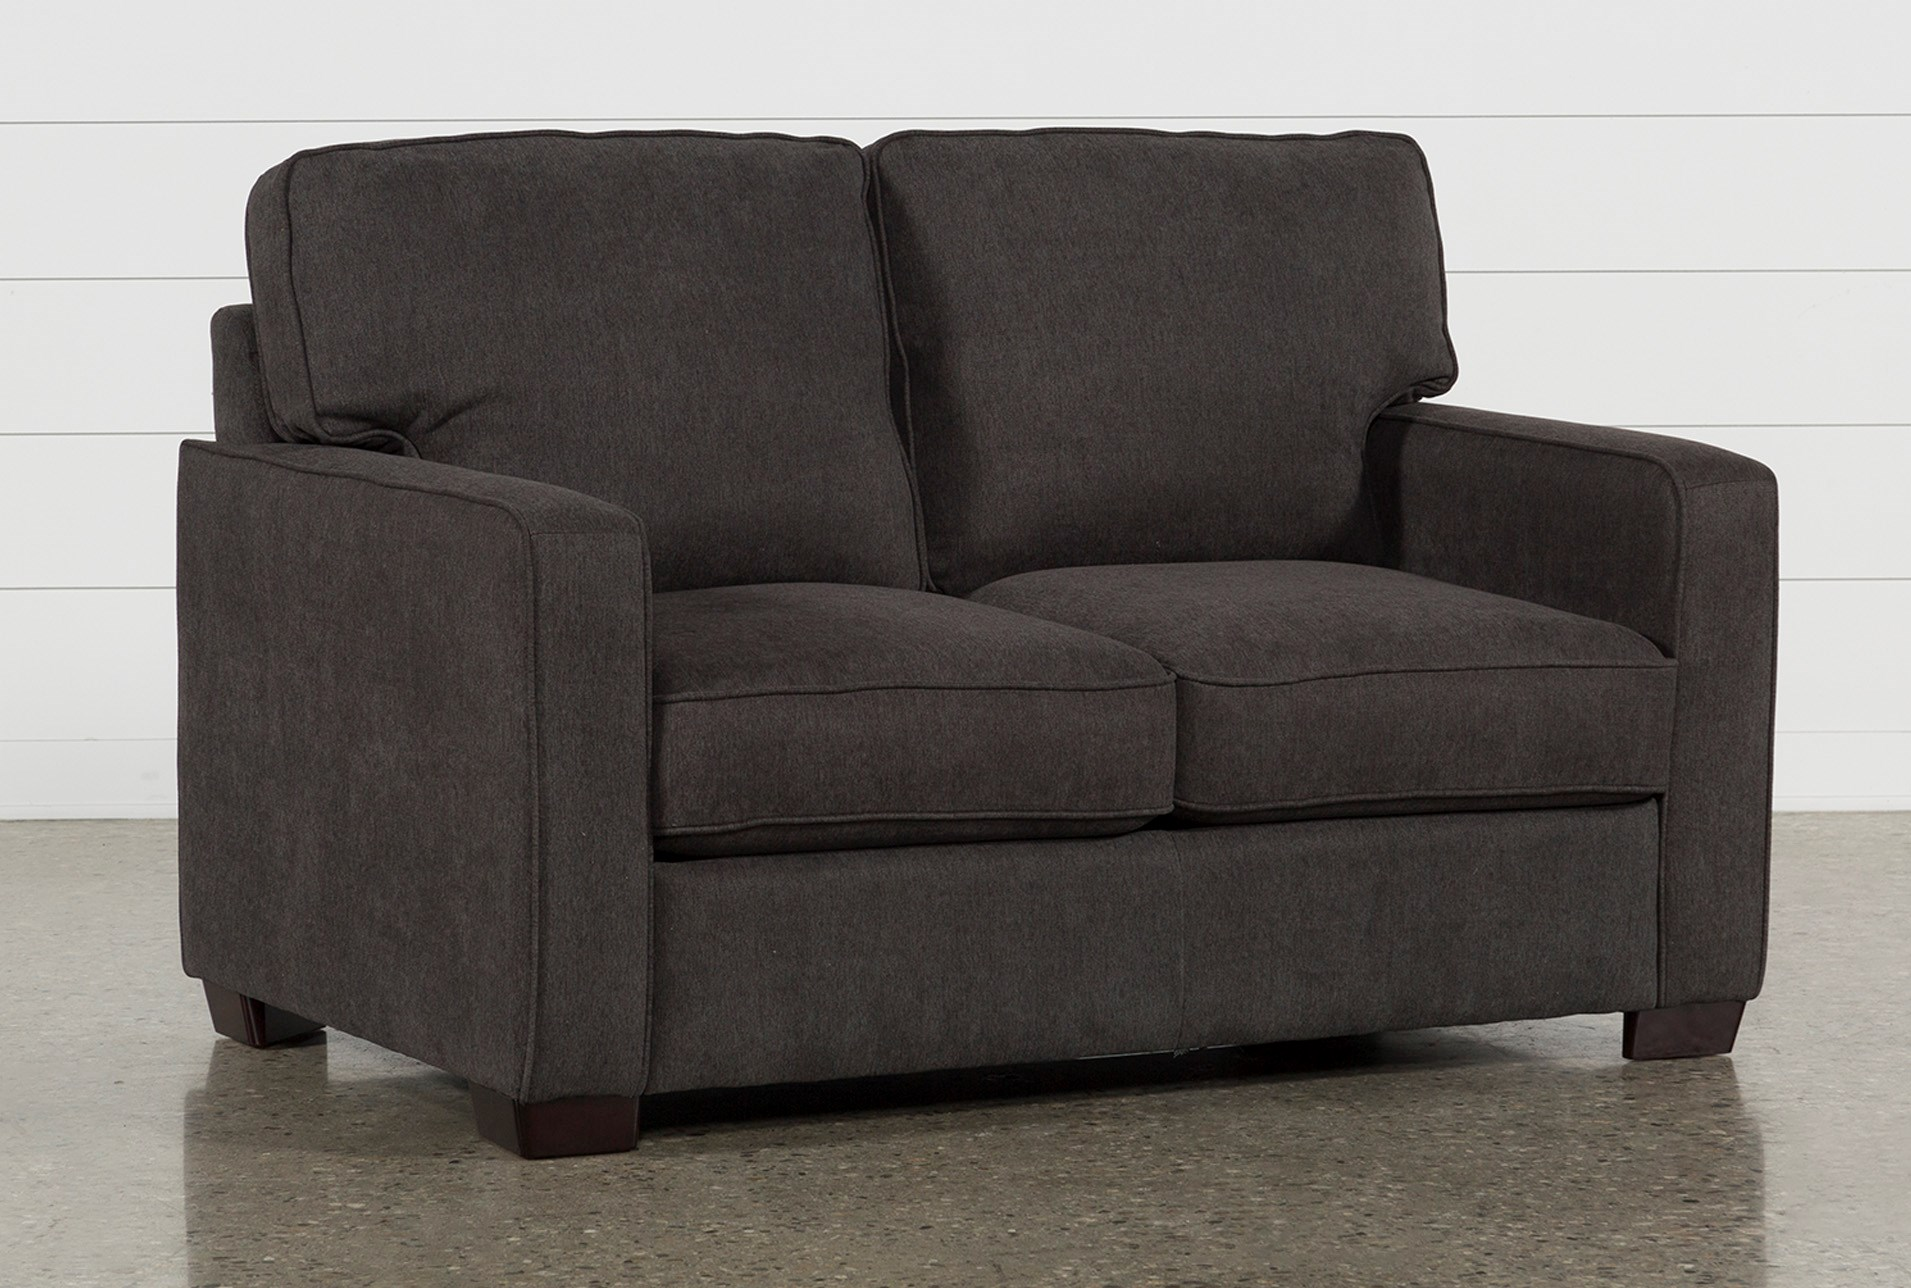 Morris Charcoal Twin Sofa Sleeper Qty 1 Has Been Successfully Added To Your Cart